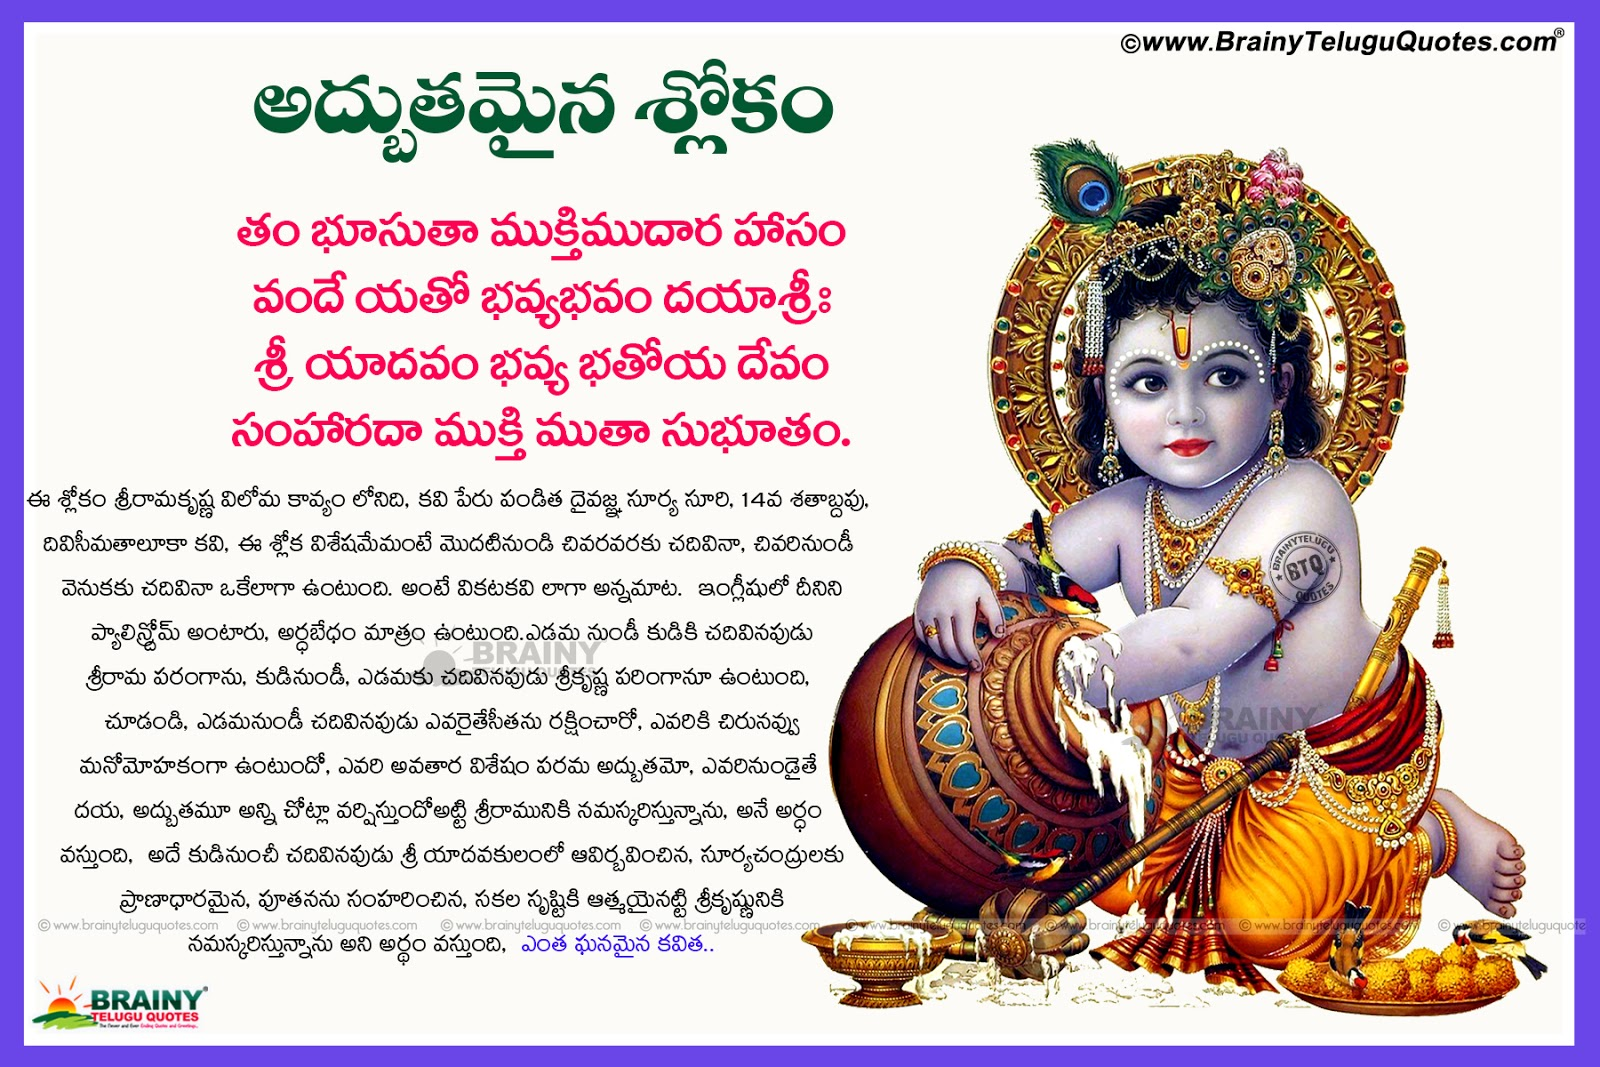 Lord Krishna Quotes Beautiful Poem About Lord Krishna In Telugu With Meaning